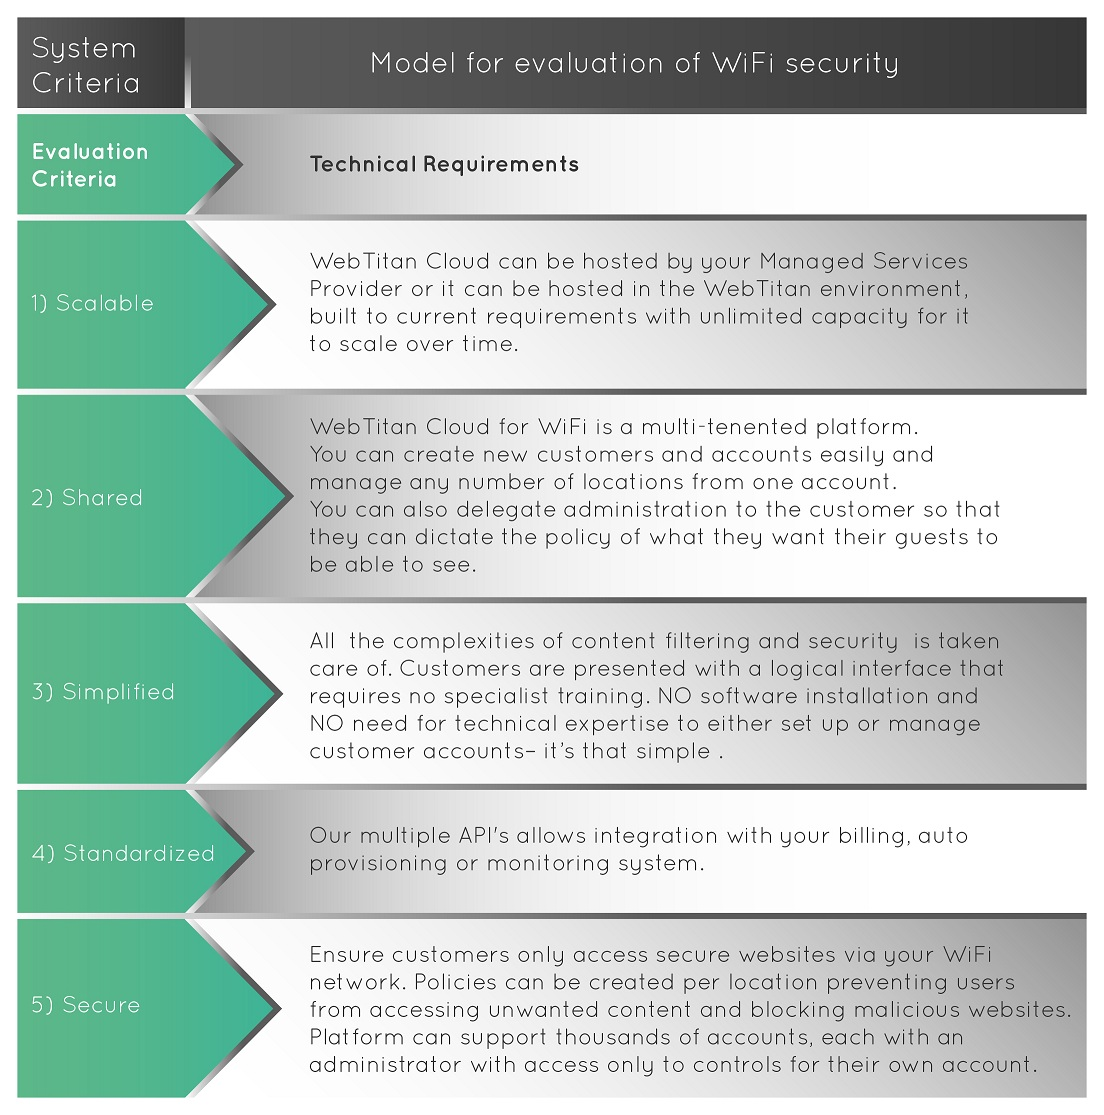 Model for evaluation of Wi-Fi security